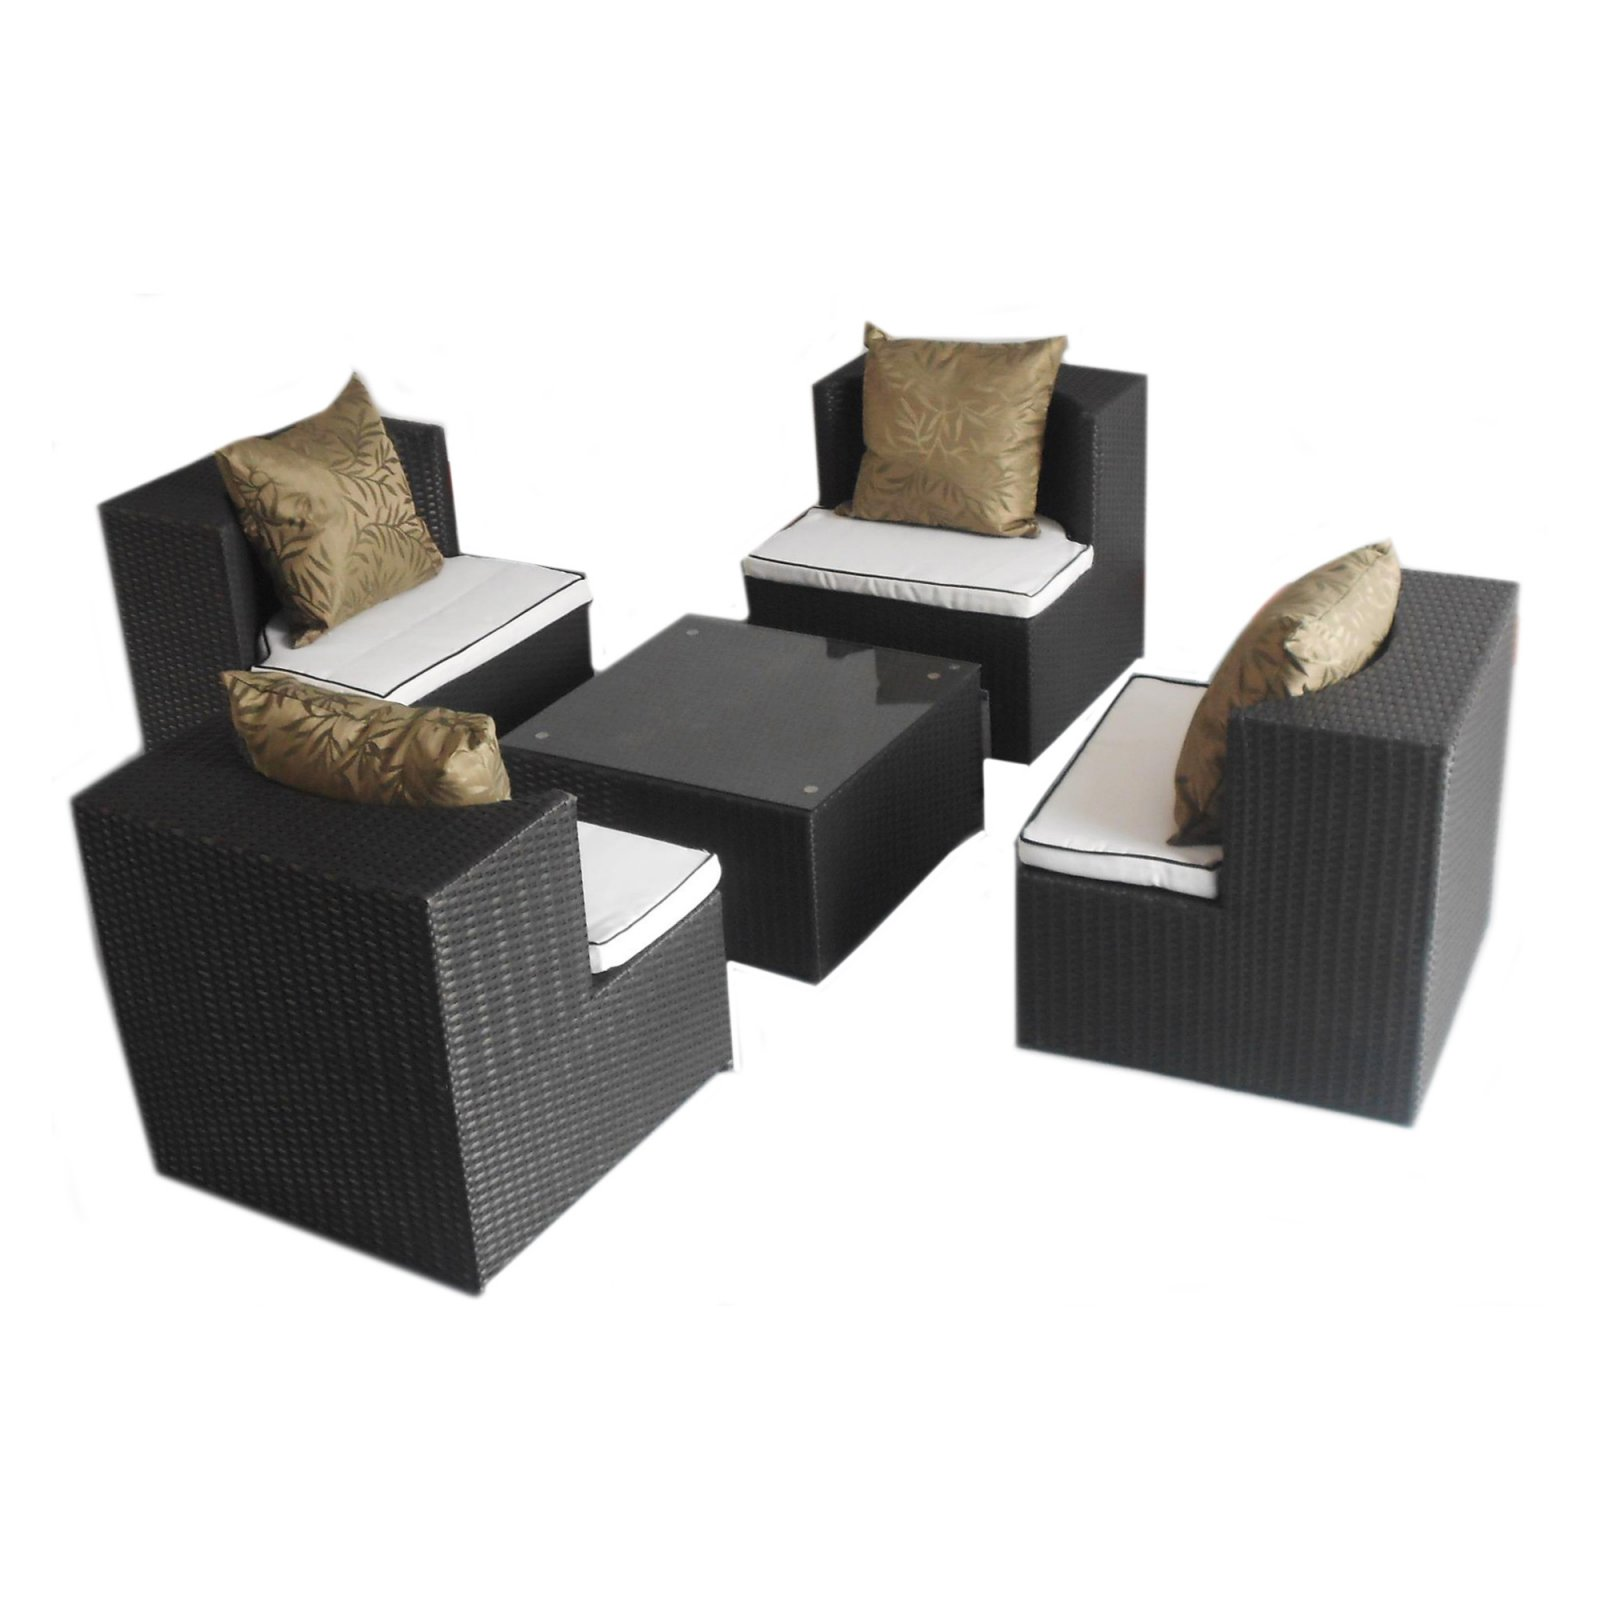 Art-Deck-Oh! Geo-Cube All Weather Wicker Chat Set by Deeco